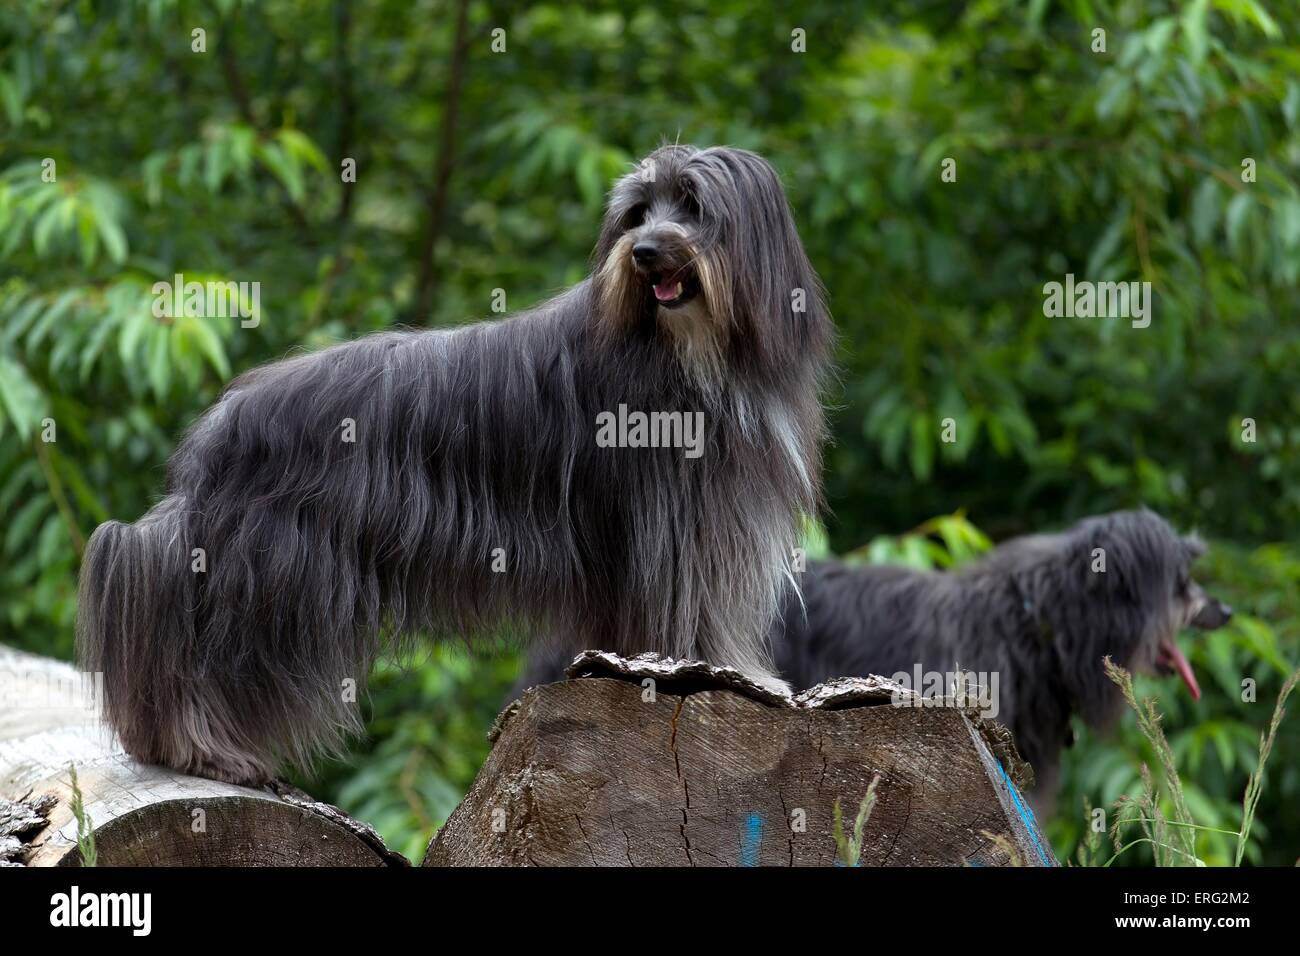 Pyrenean Sheepdogs - Stock Image